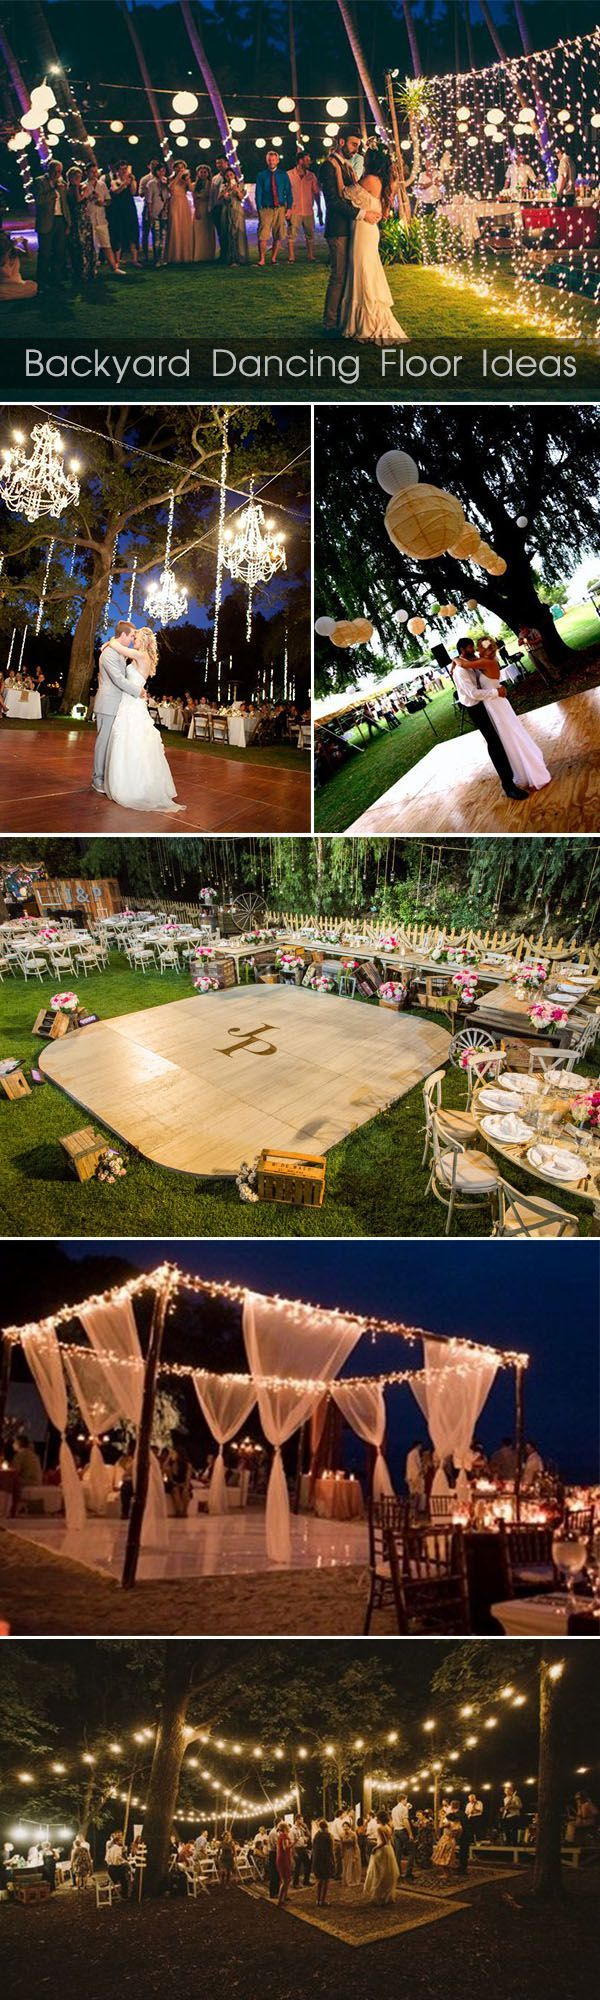 If Vonabell would let us have a tiny wedding in her back yard... dancing floor ideas for backyard weddings